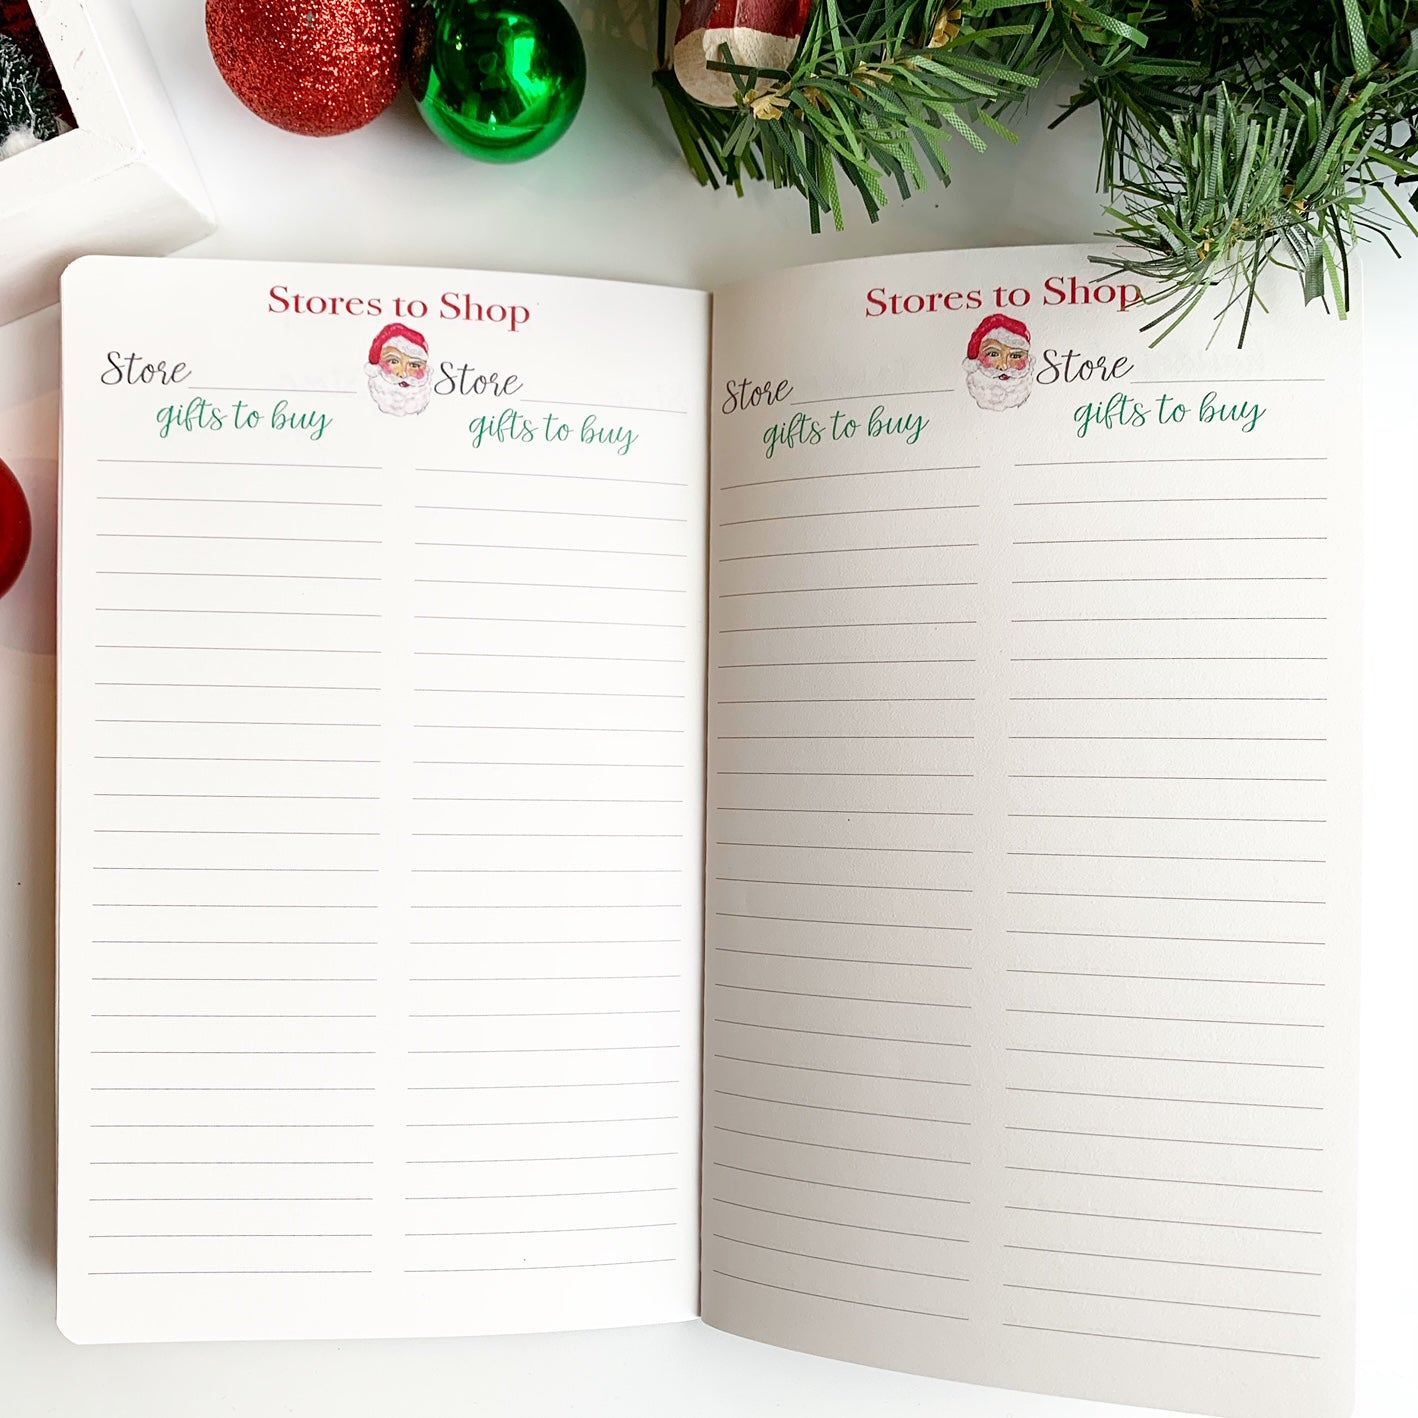 Christmas Planner Stores to Shop Pages